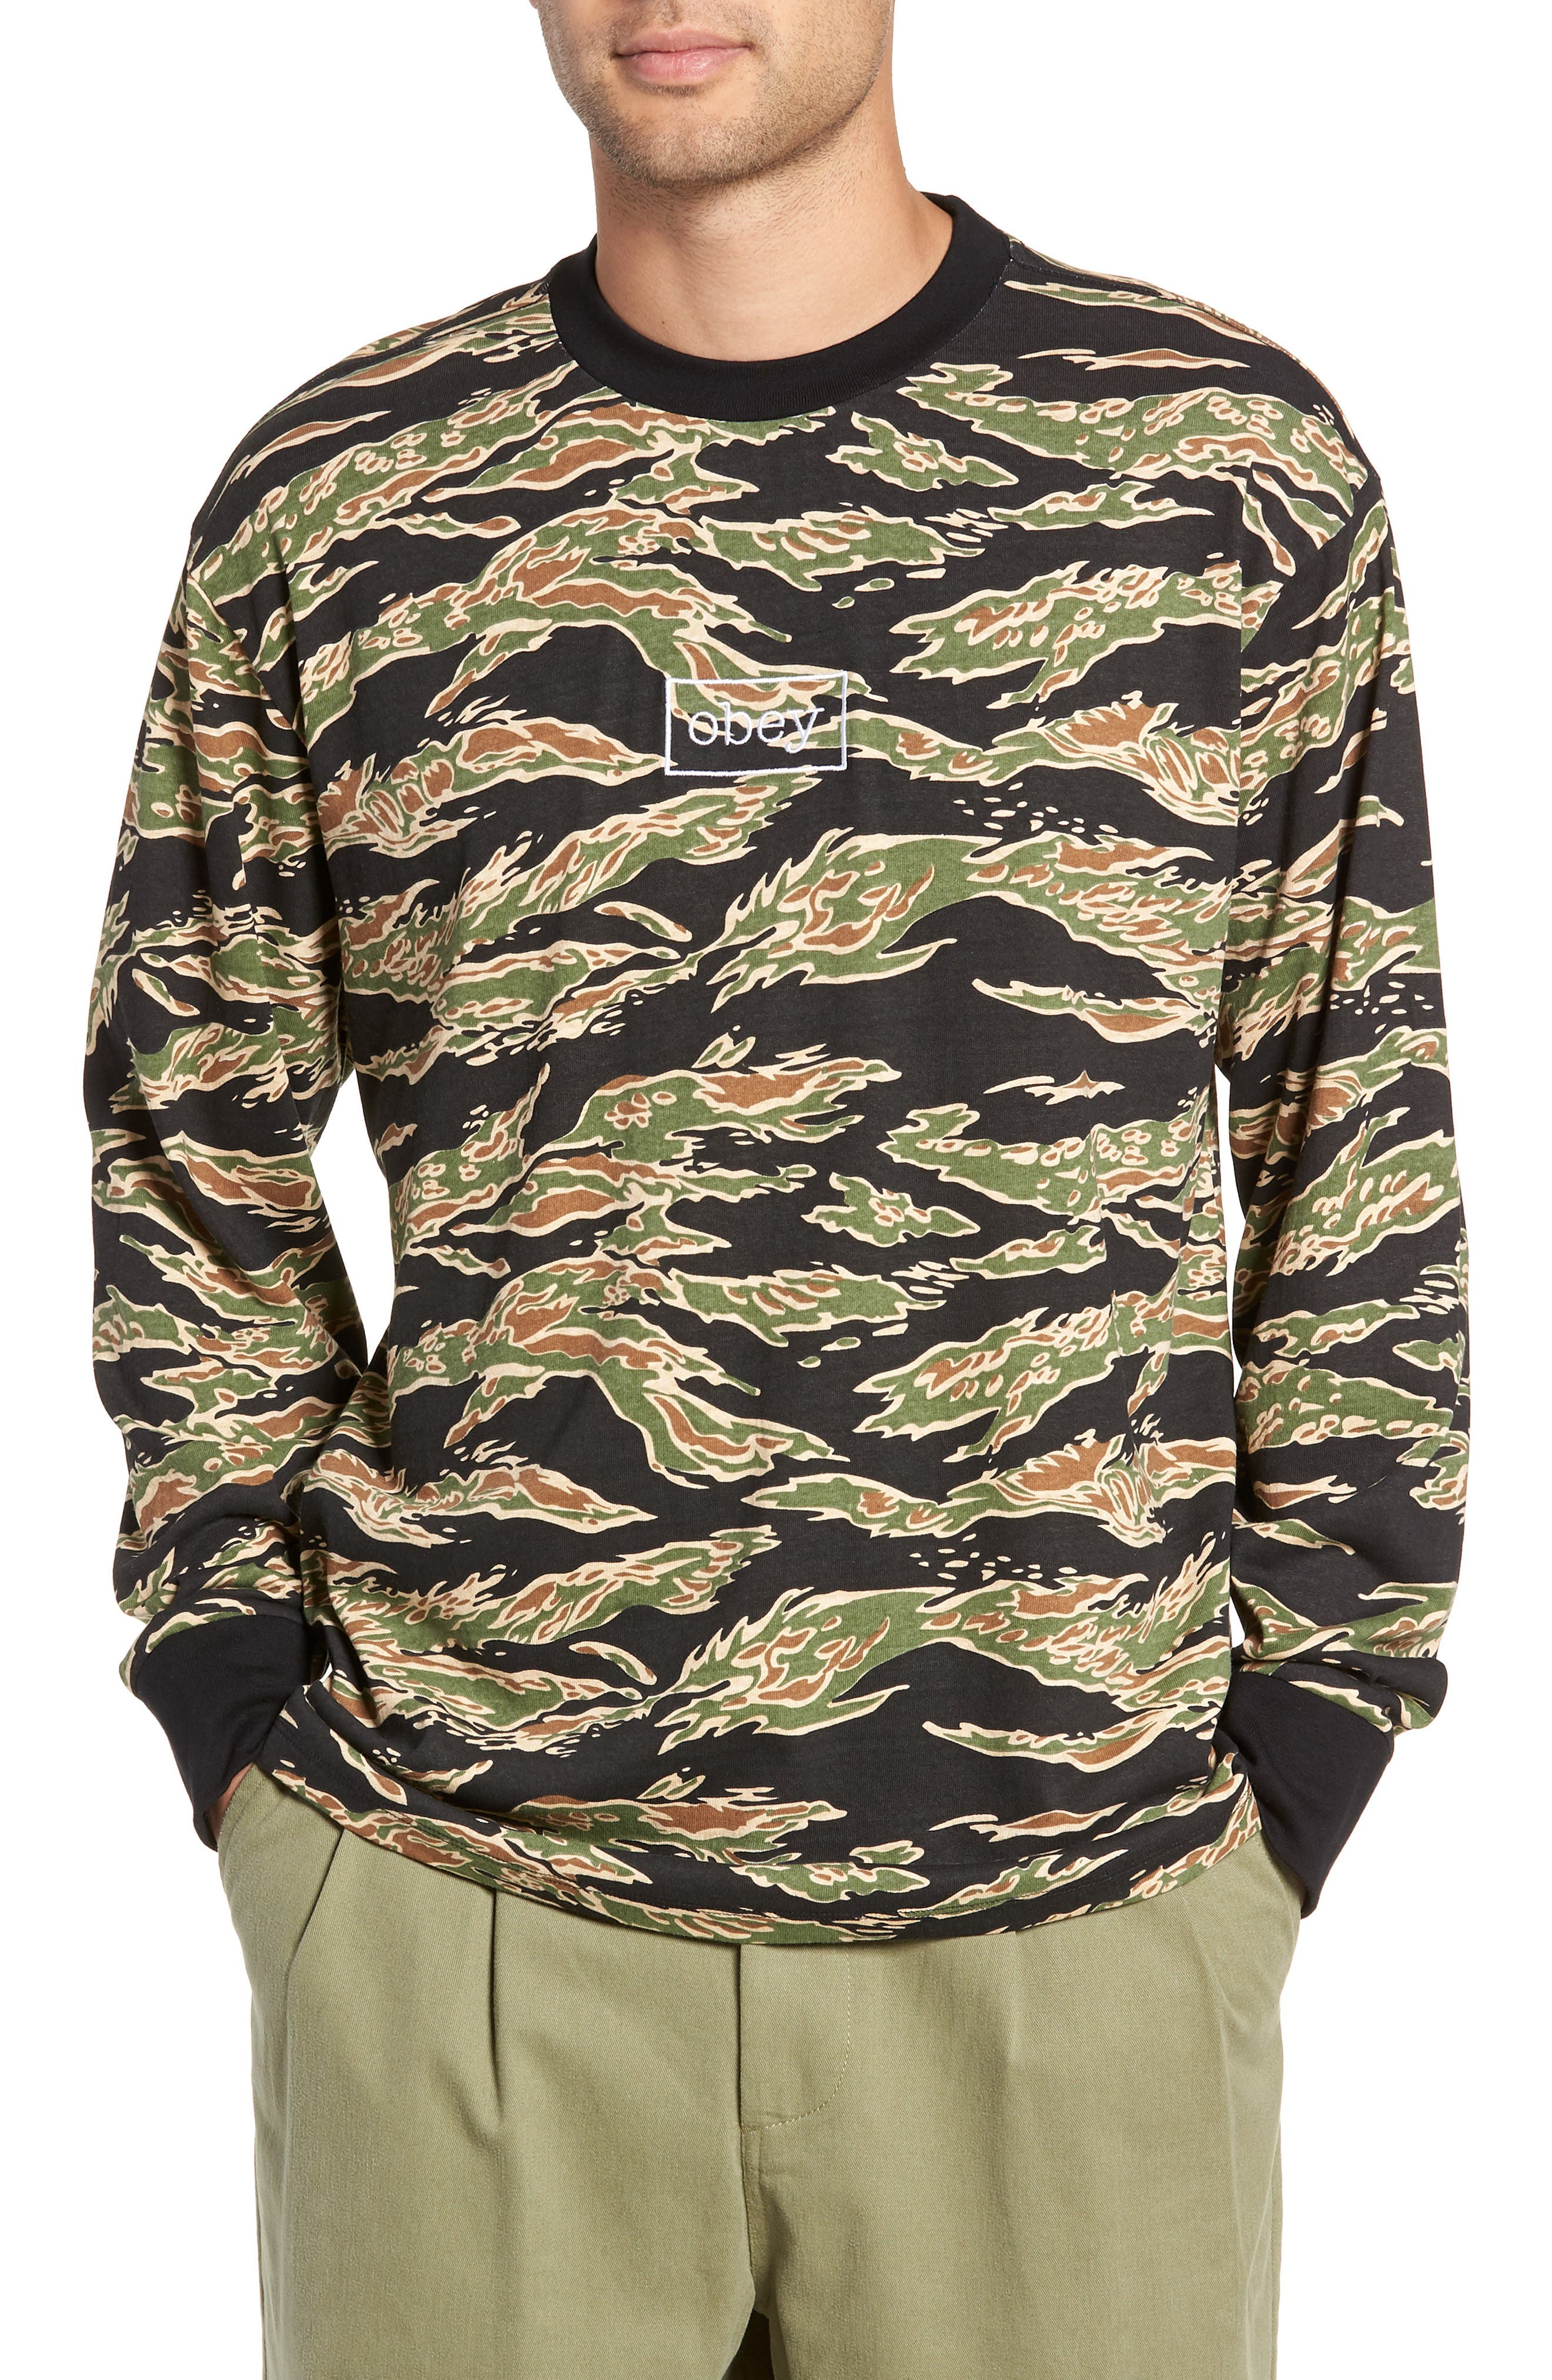 Flight Classic T-Shirt,                         Main,                         color, TIGER CAMO